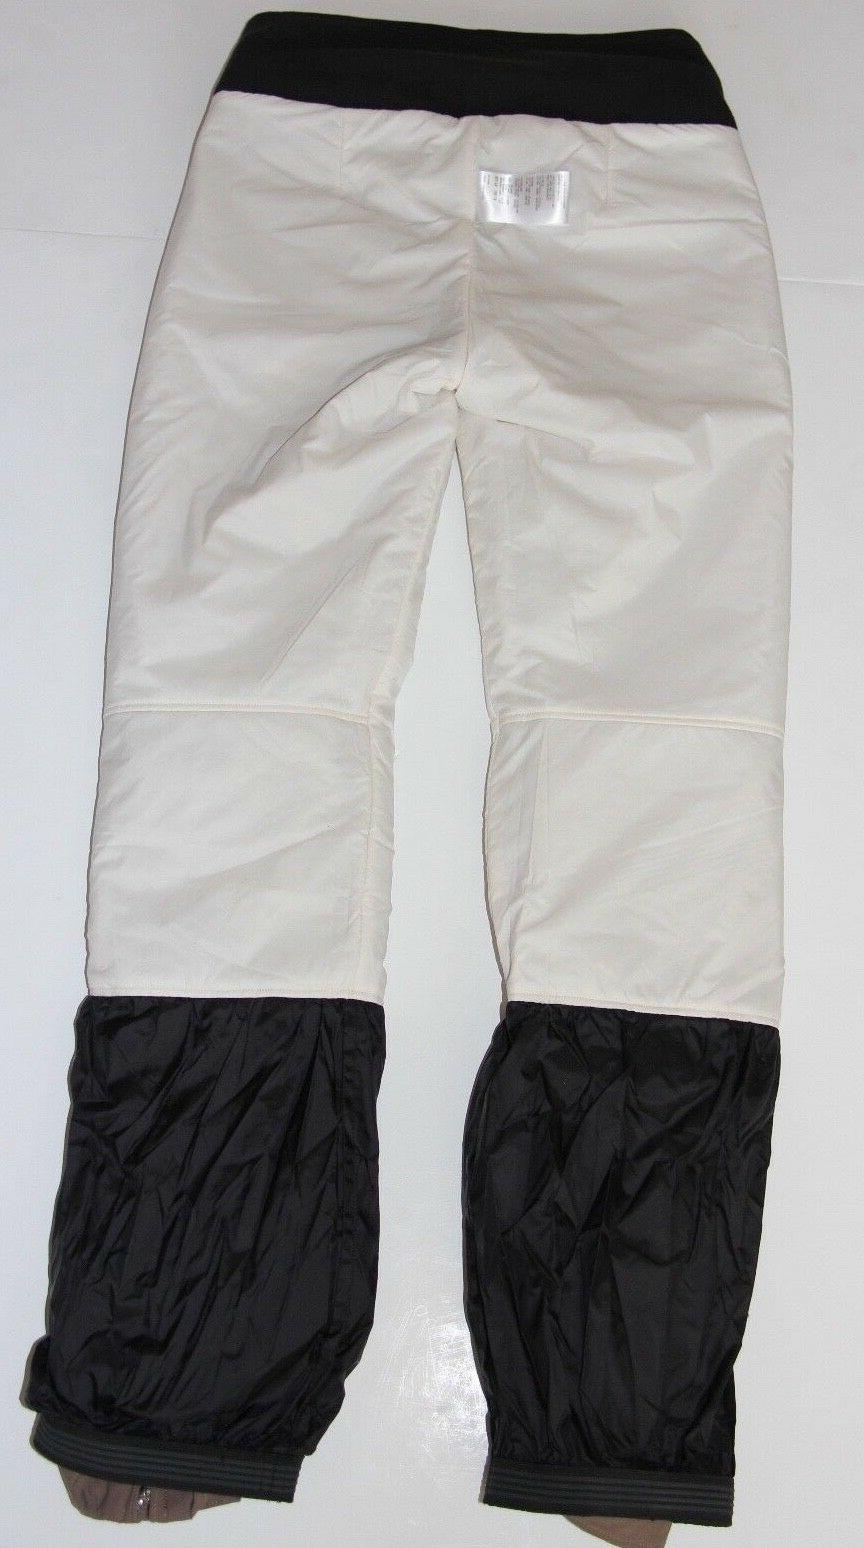 "Bogner Insulated Pants 72 L6 Inseam 32"" - Wet"